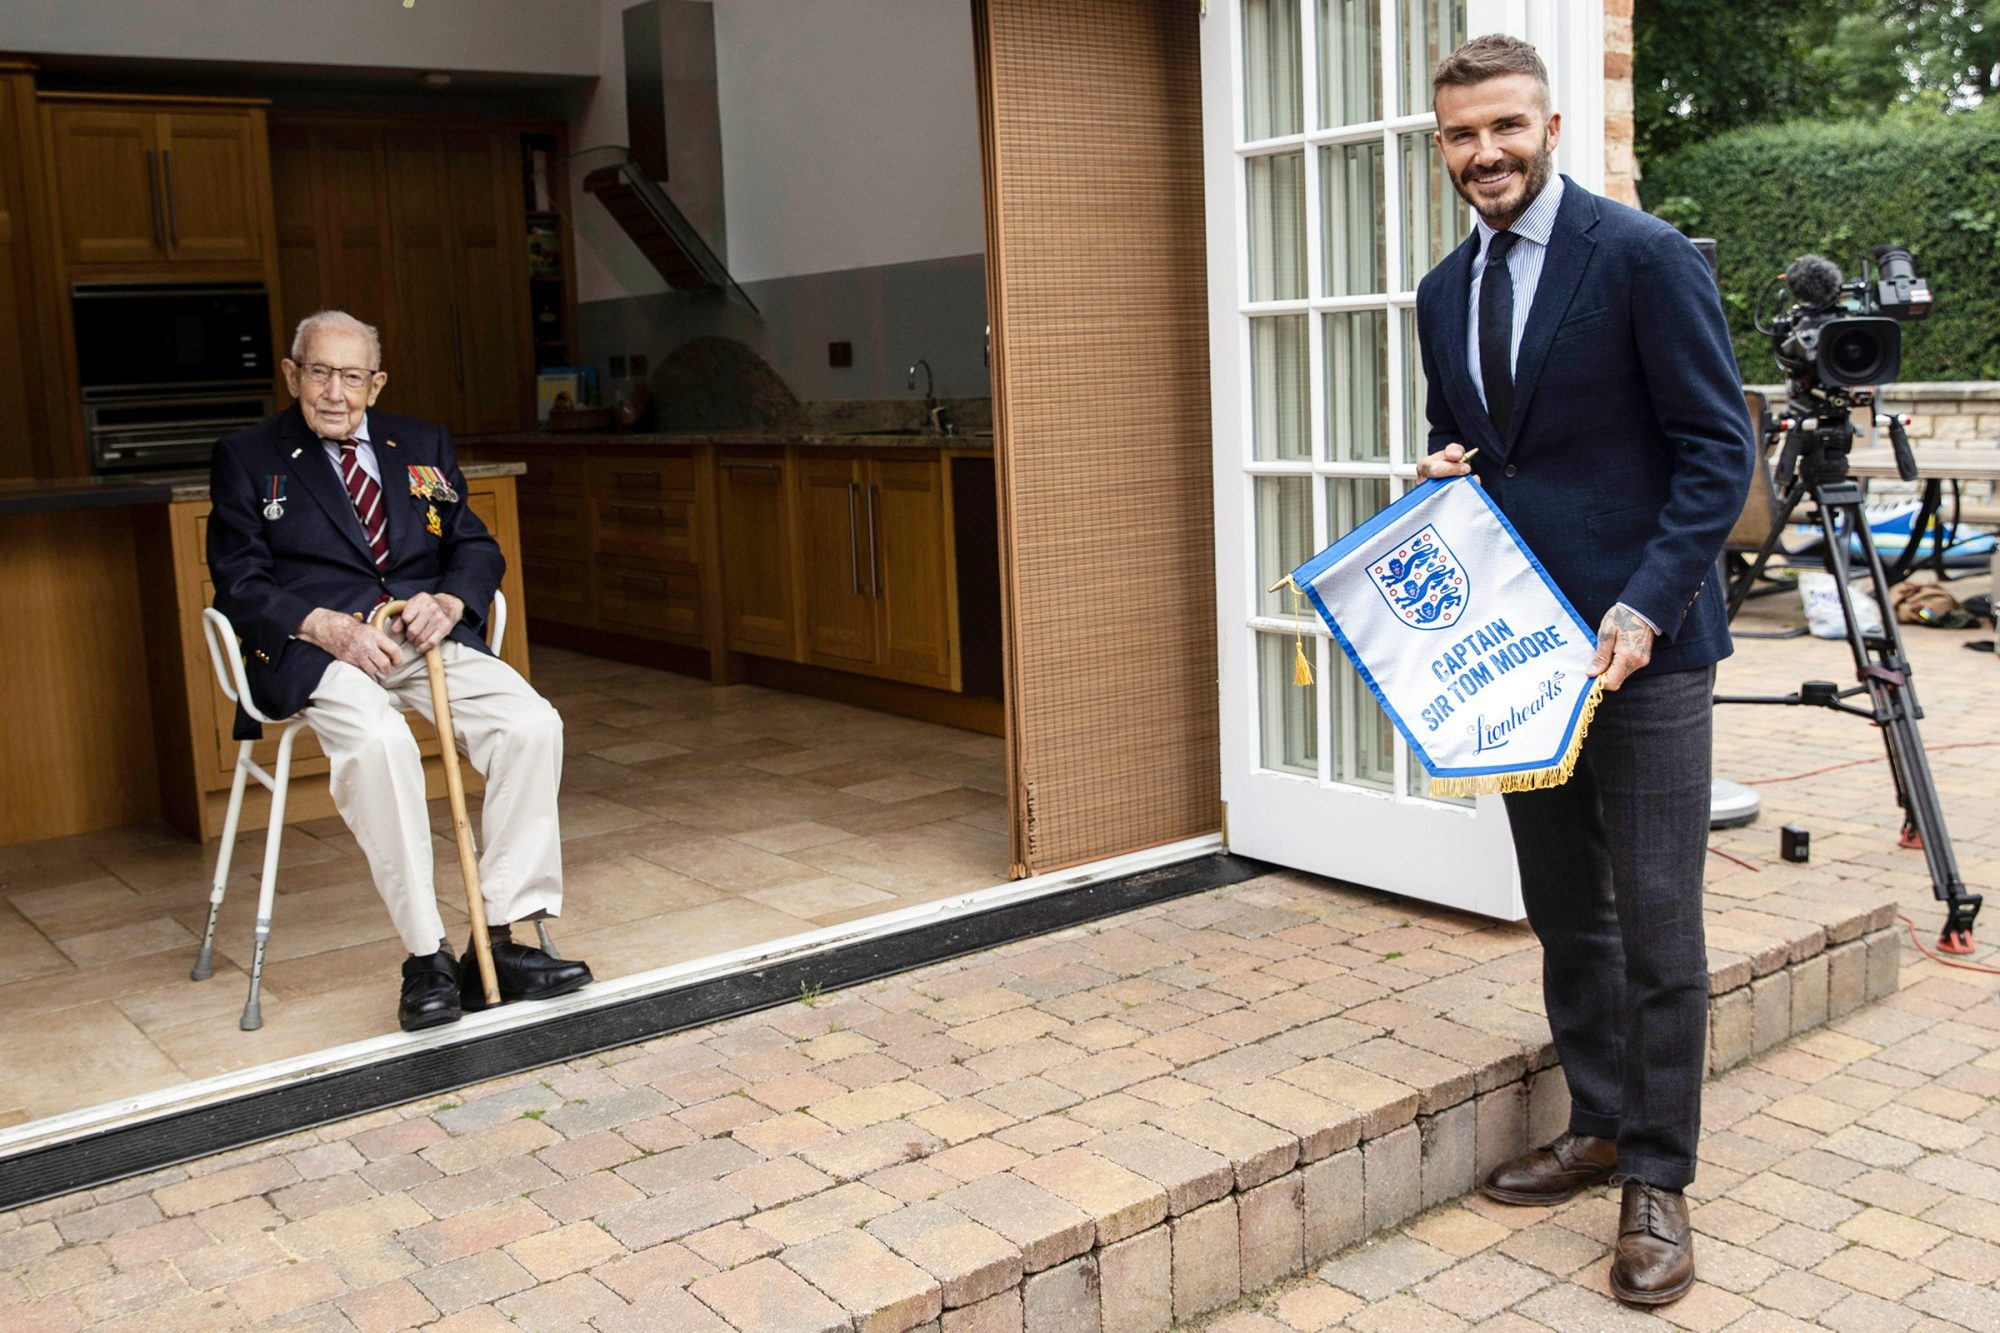 David Beckham Meets Captain Sir Tom Moore, Marston Moretaine, Bedfordshire, UK - 09 Jul 2020